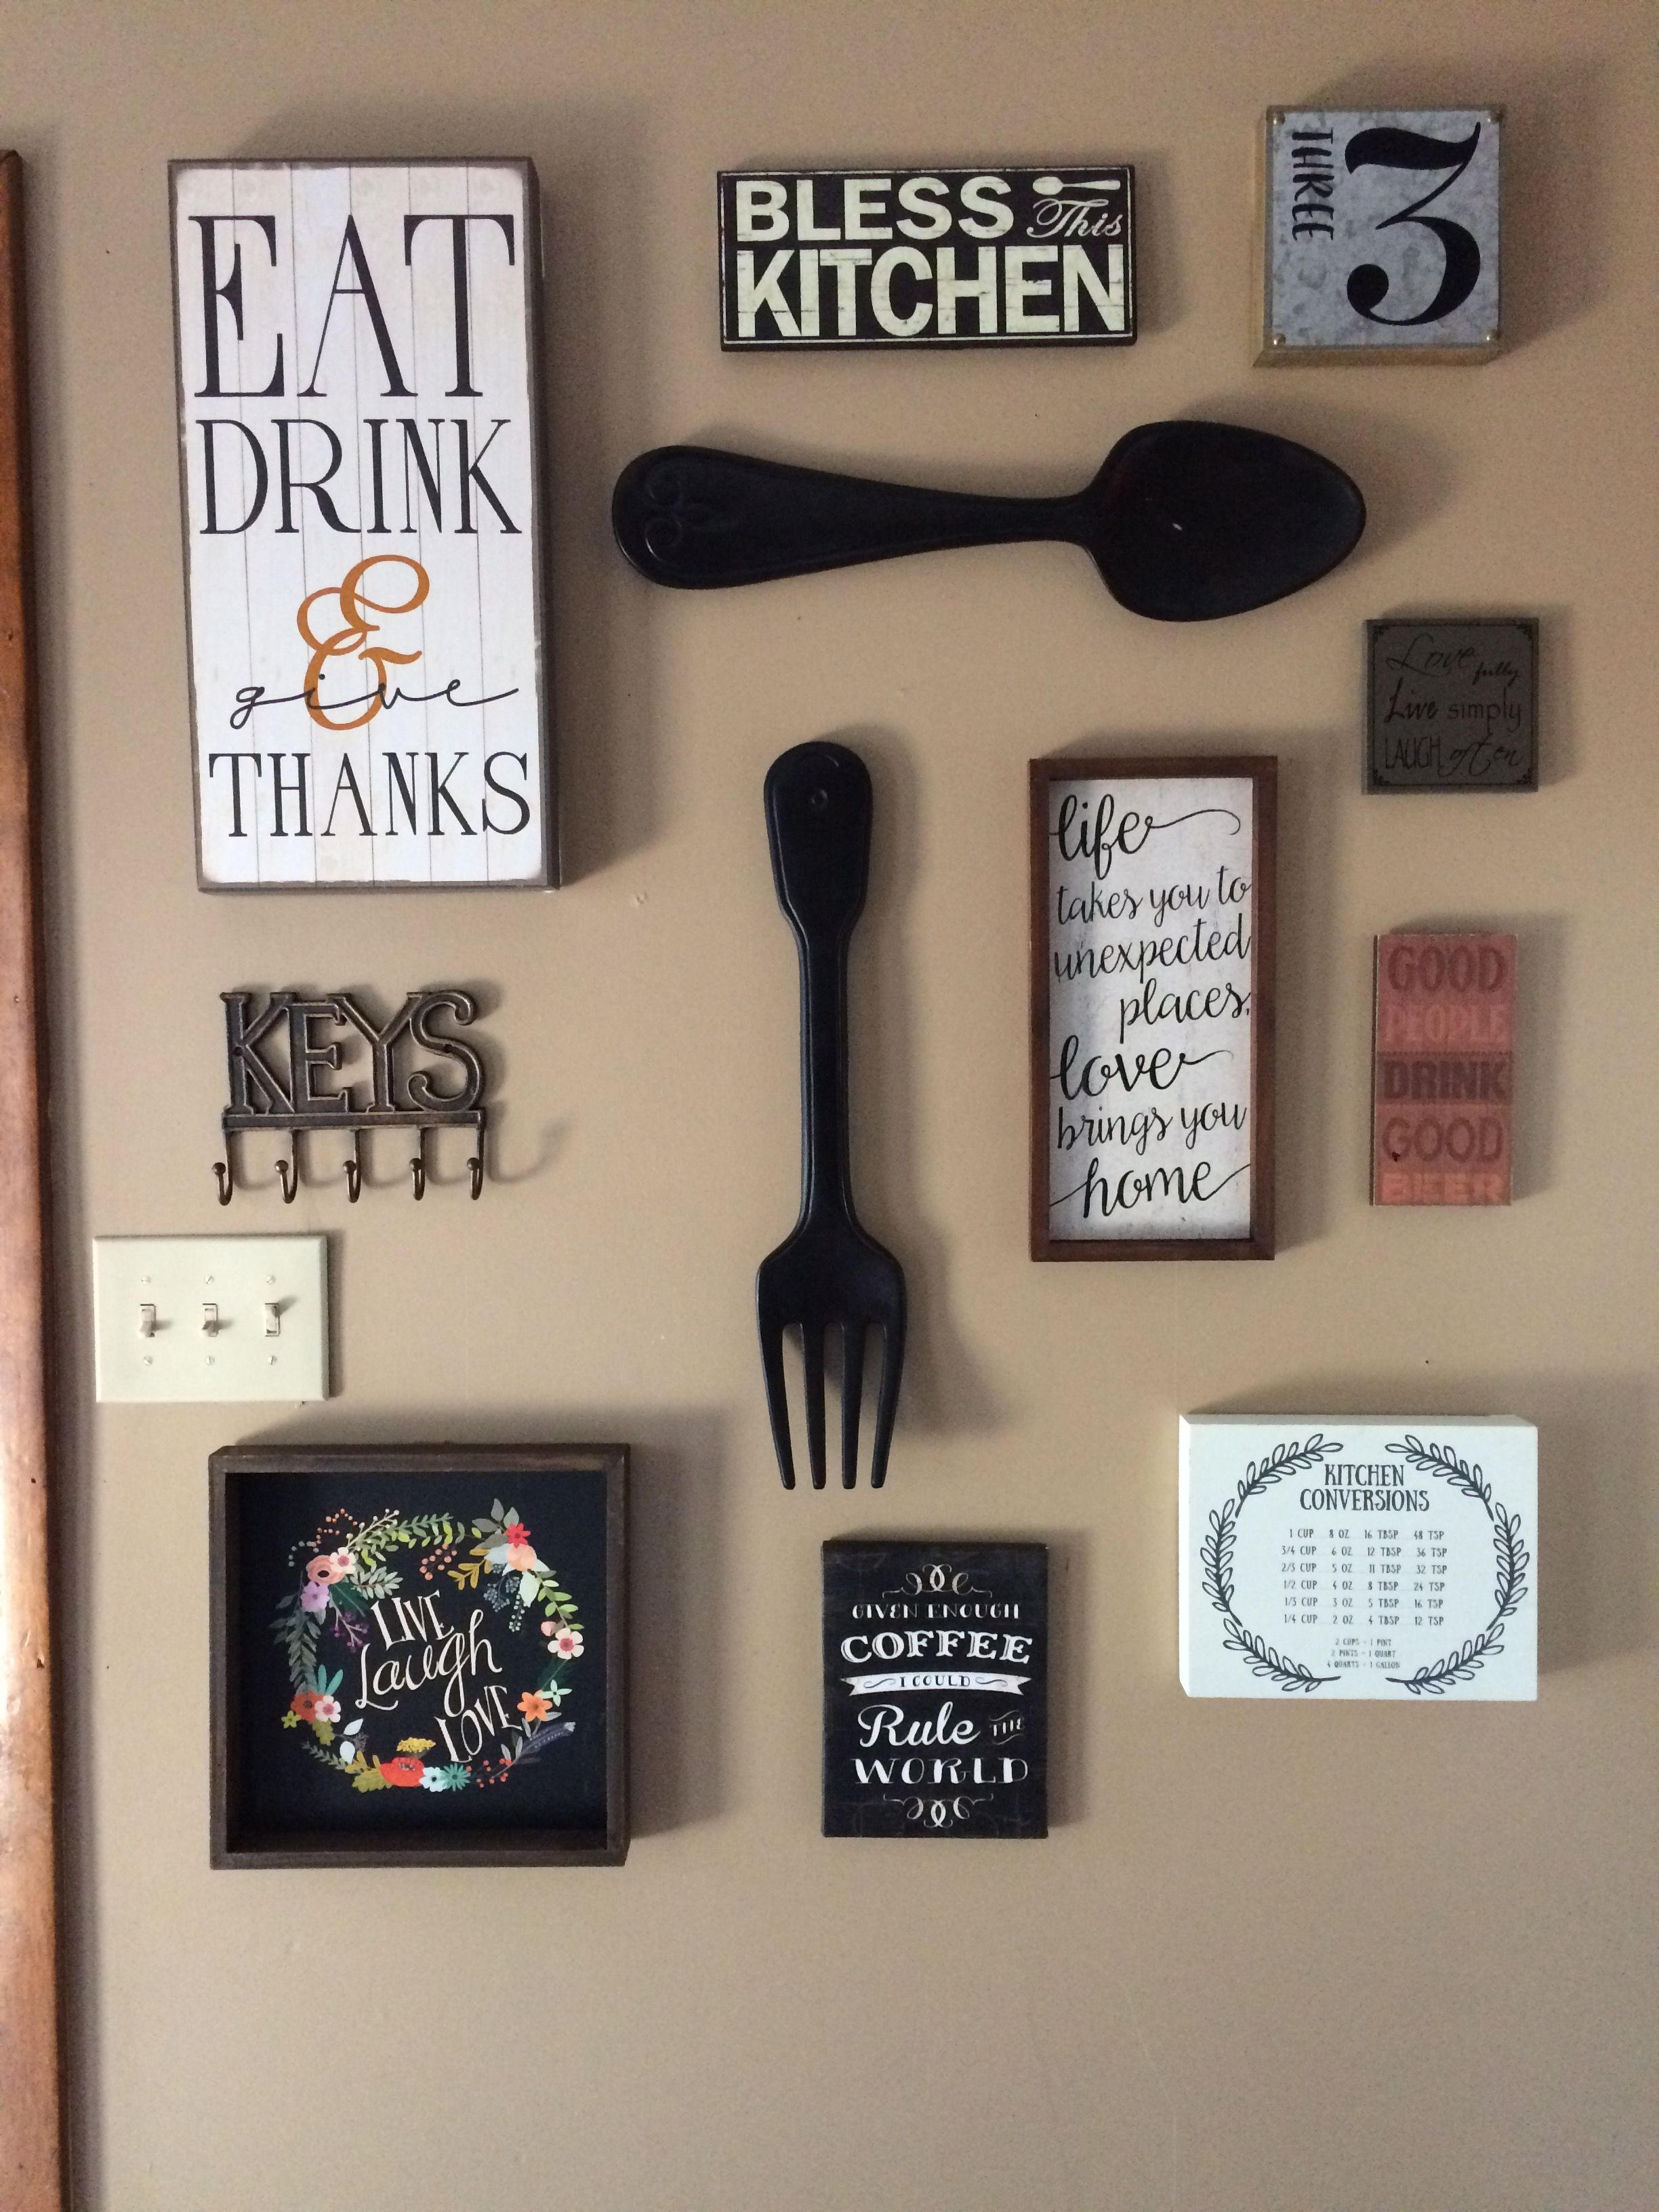 Themed Kitchen Decor Ideas My Kitchen Gallery Wall All Decor From Hobby Lobby And